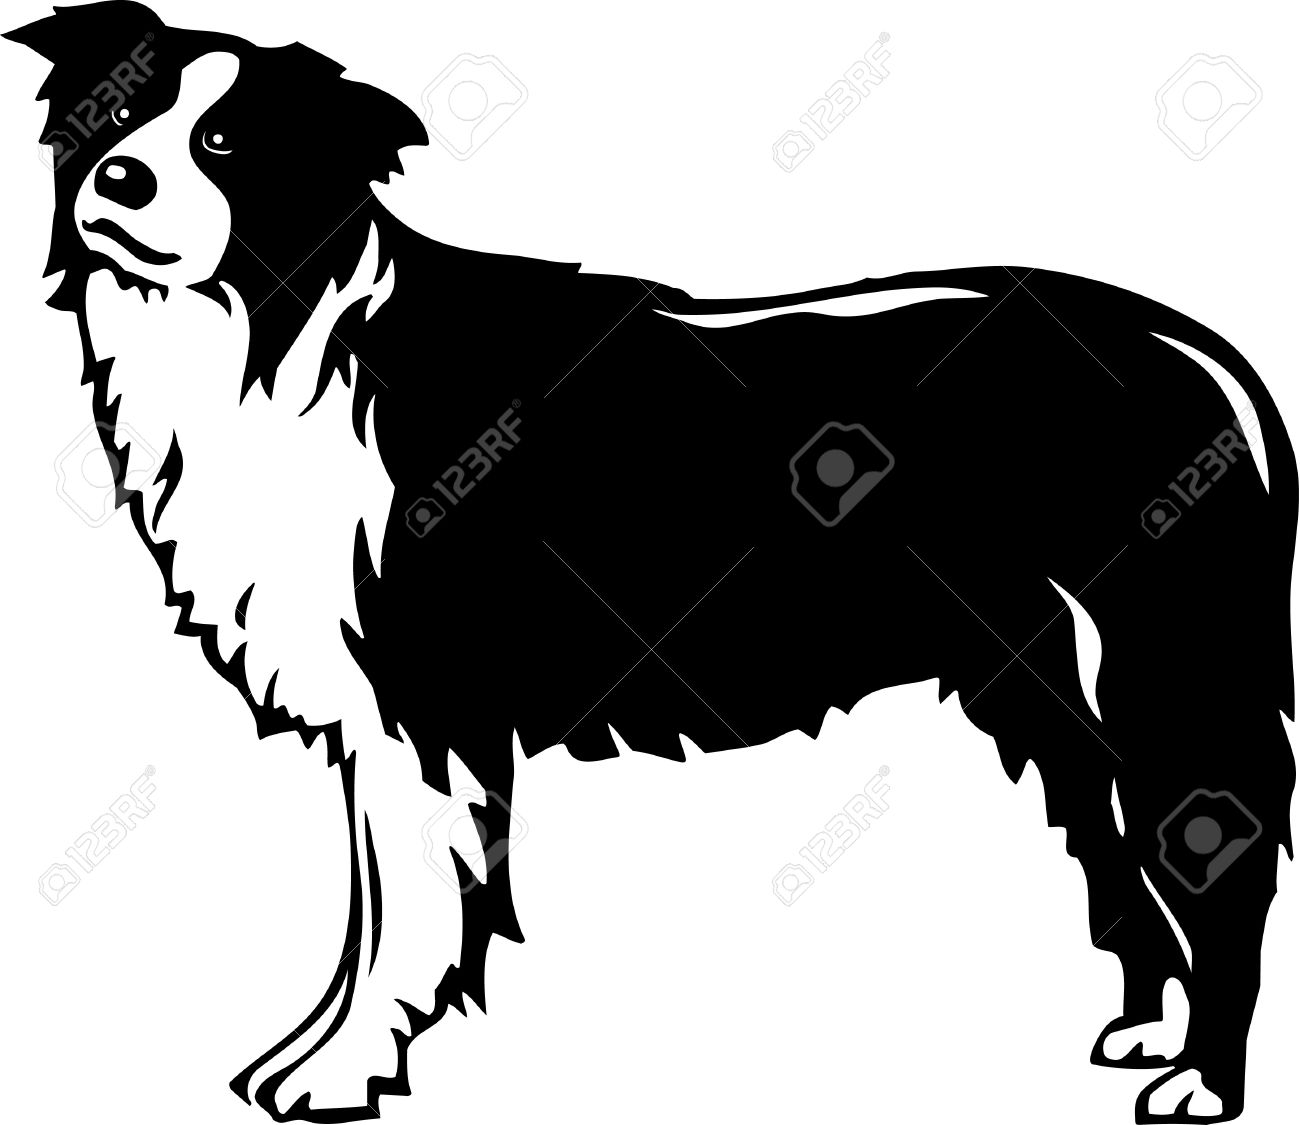 Border Collie clipart #18, Download drawings